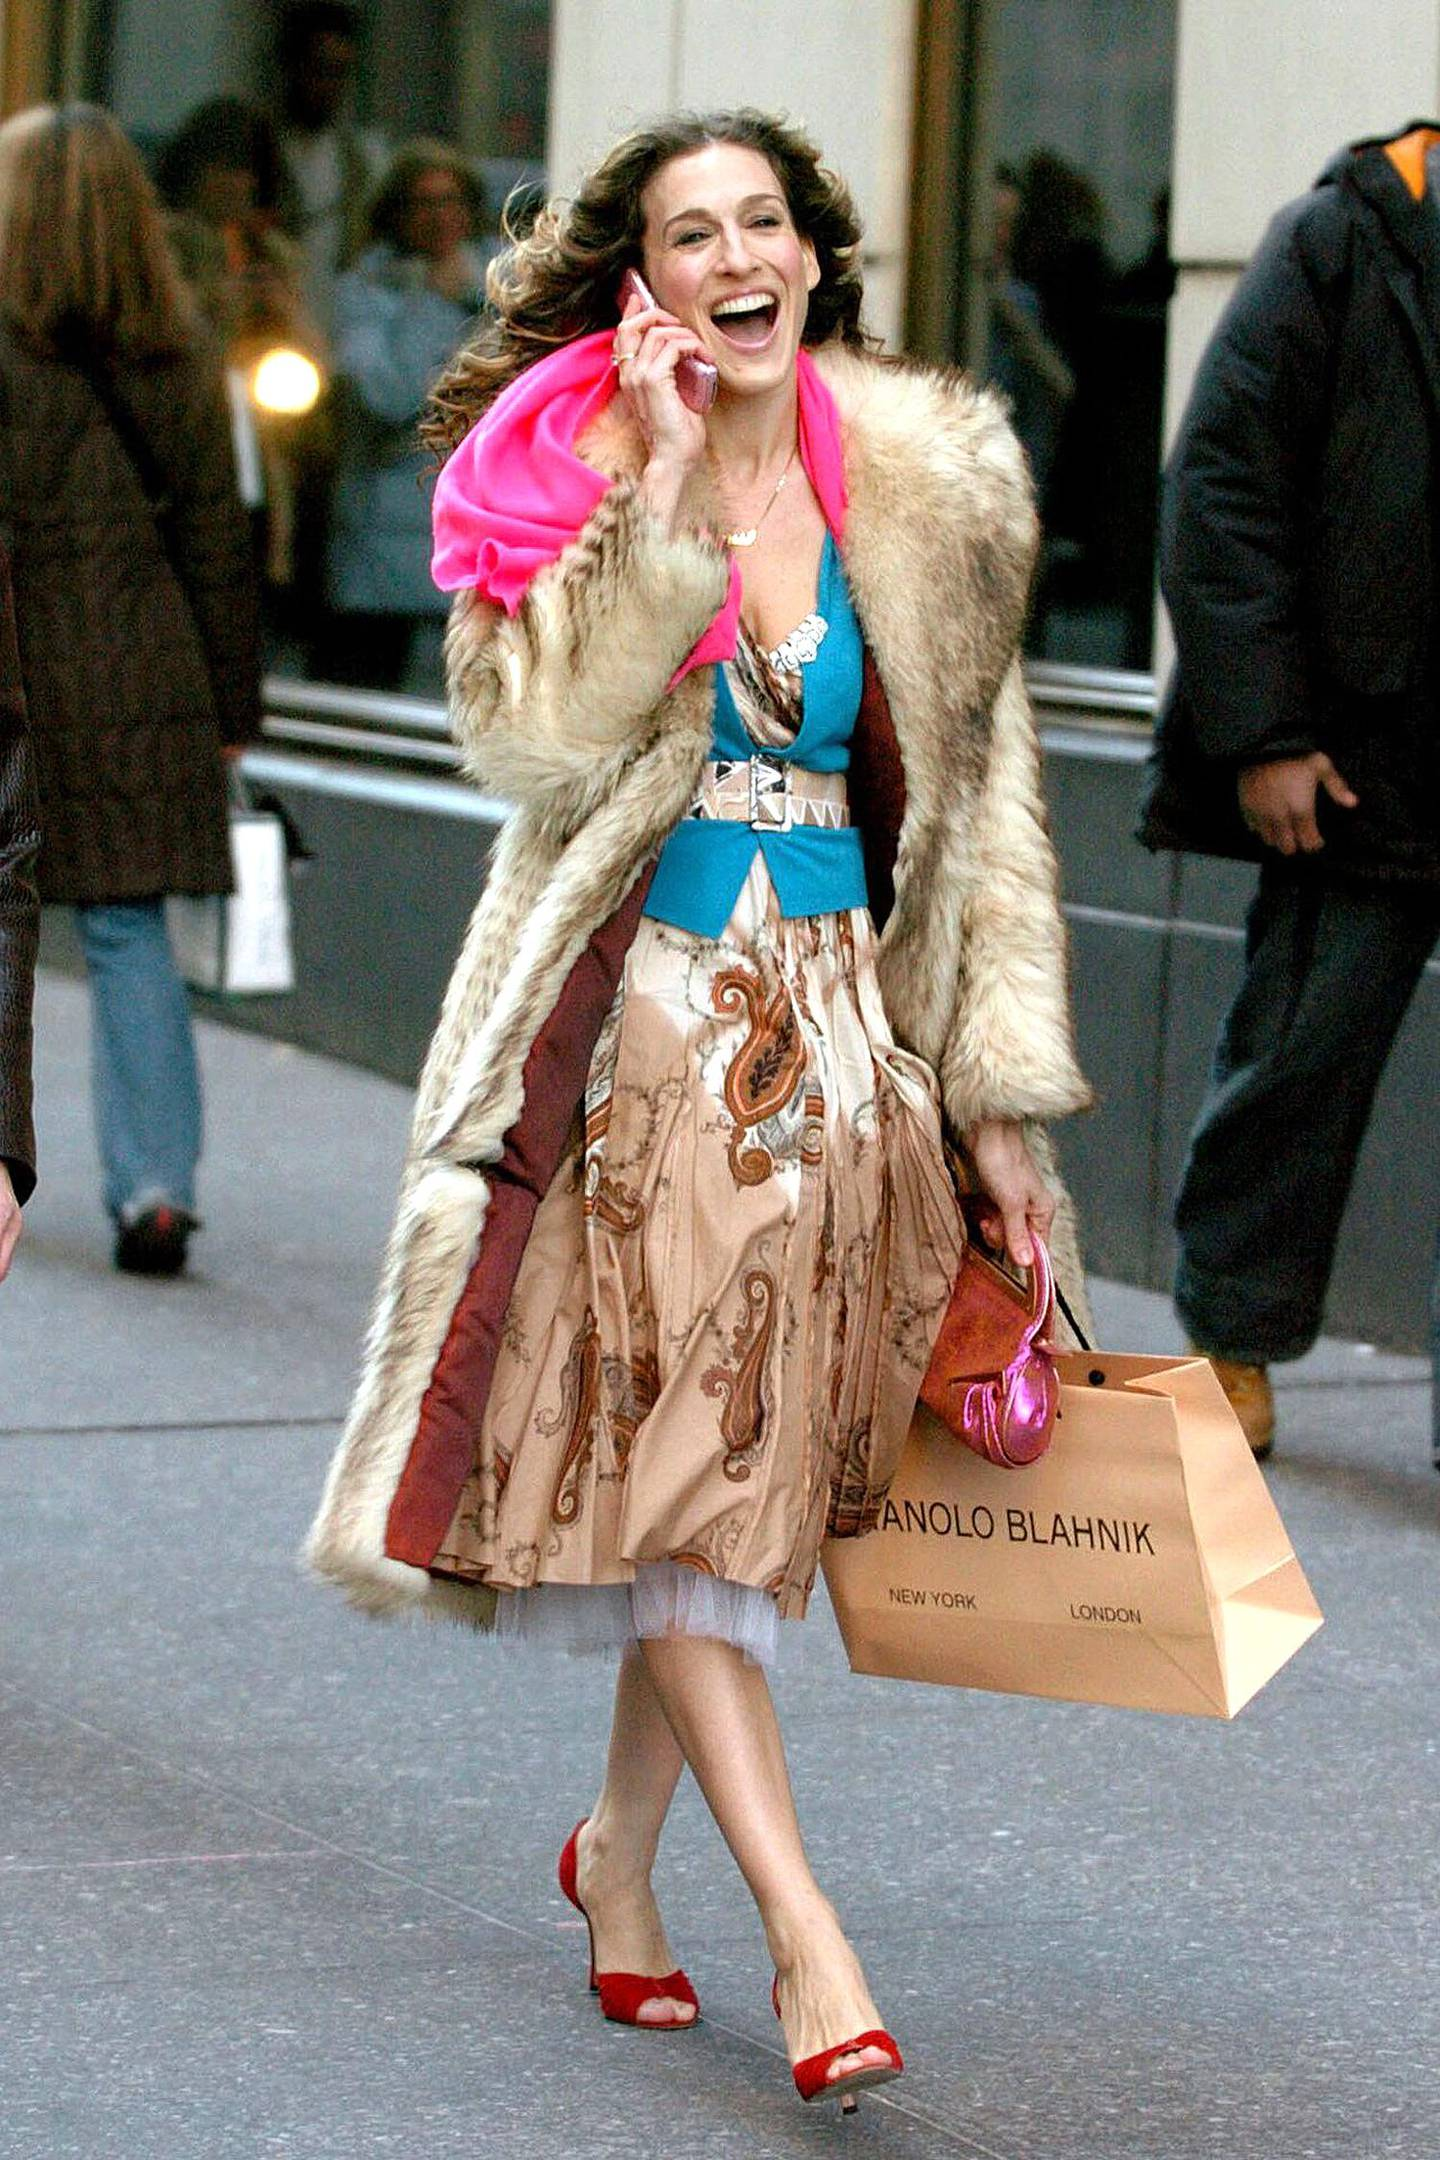 Carrie Bradshaw in a scene from the HBO series, Sex and the City. CEDIT: Courtesy HBO